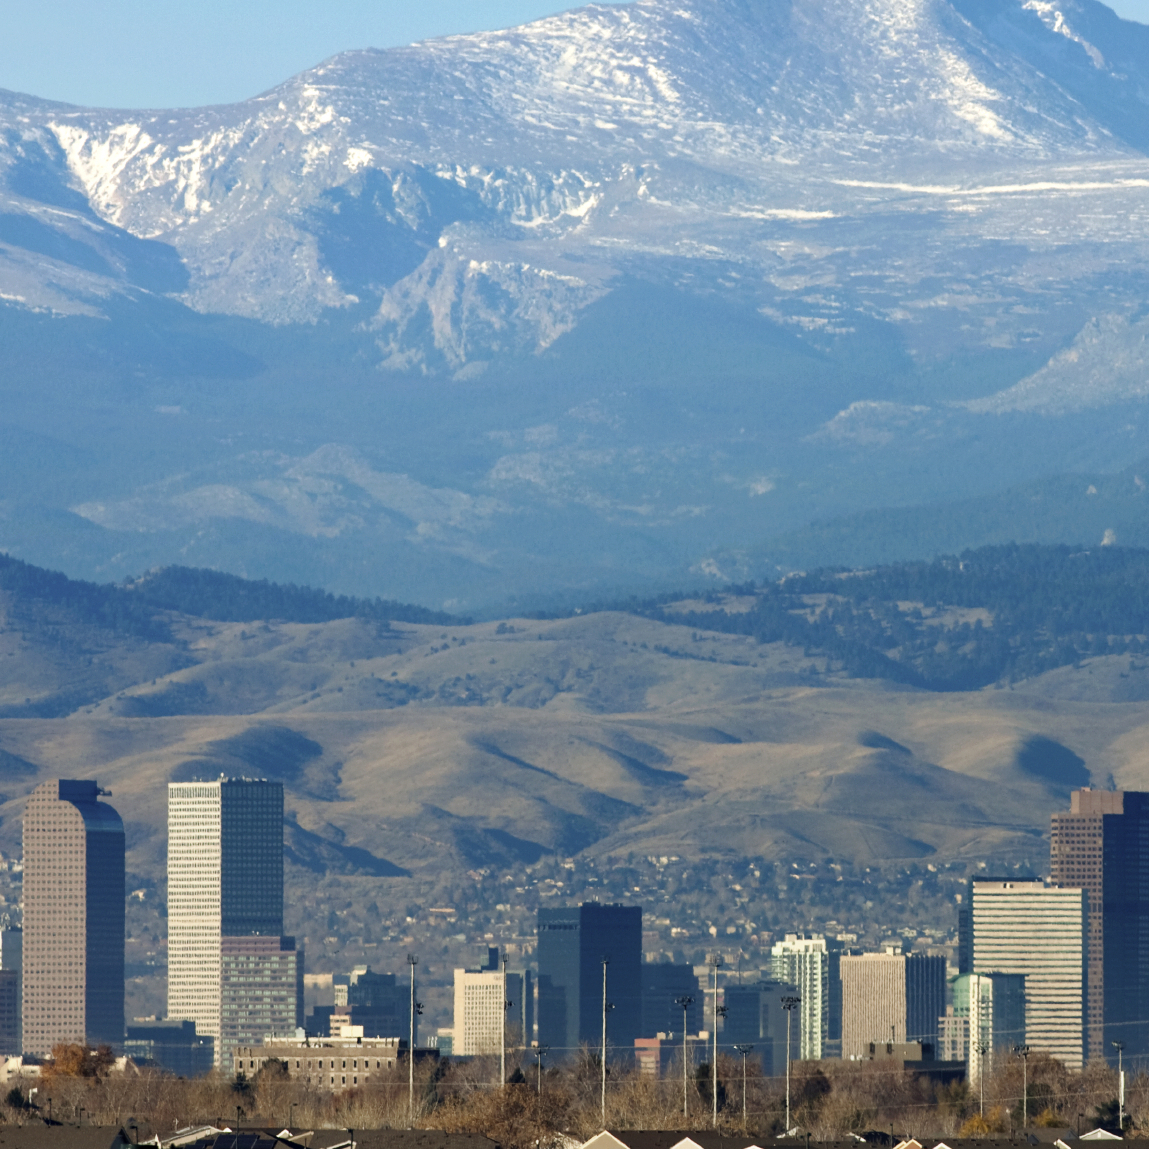 Denver is one of the Top 10 Cities For Accountants